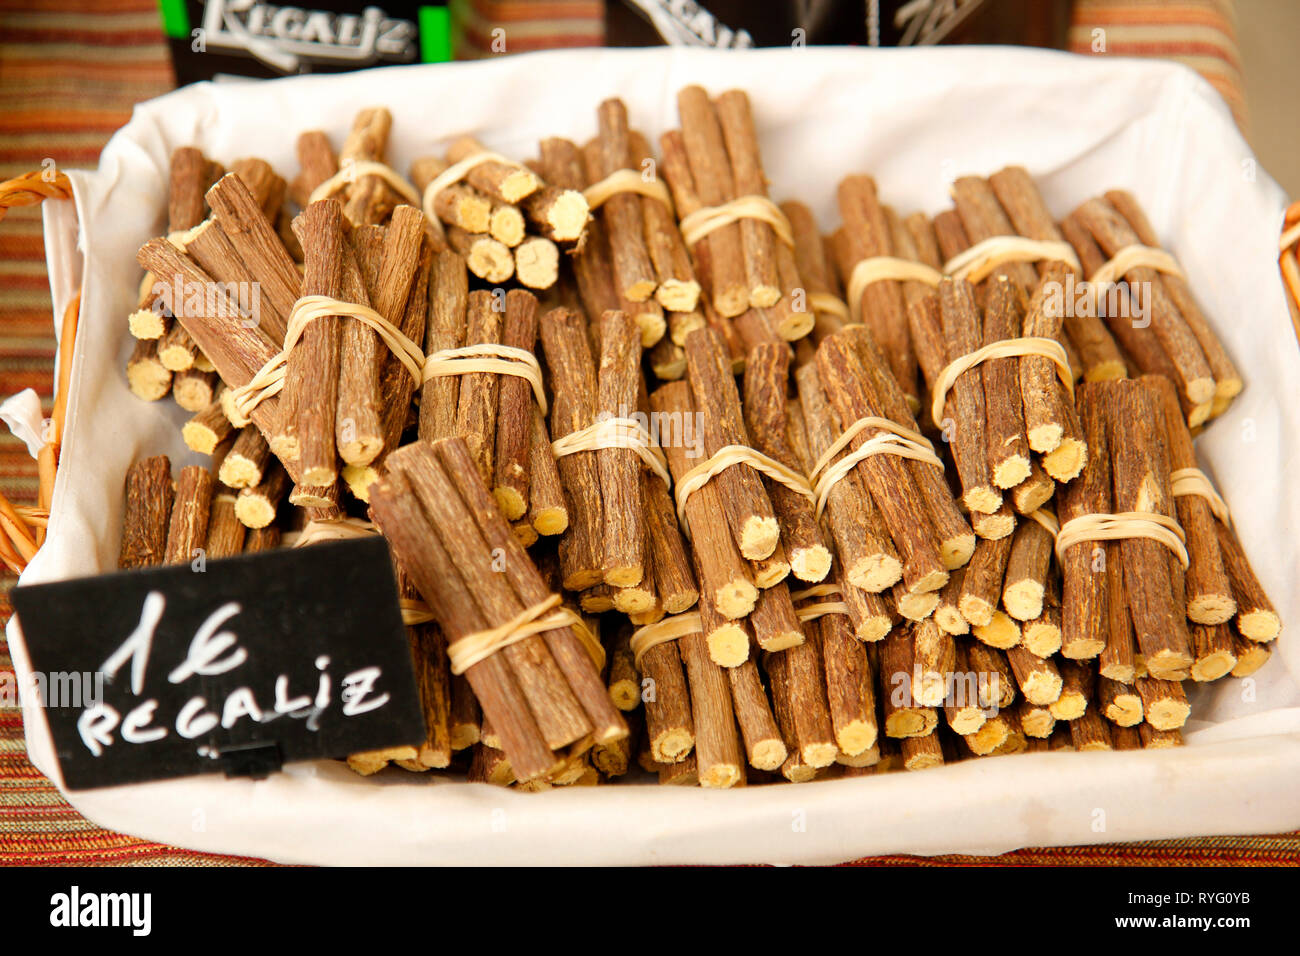 LIquorice for sale. - Stock Image